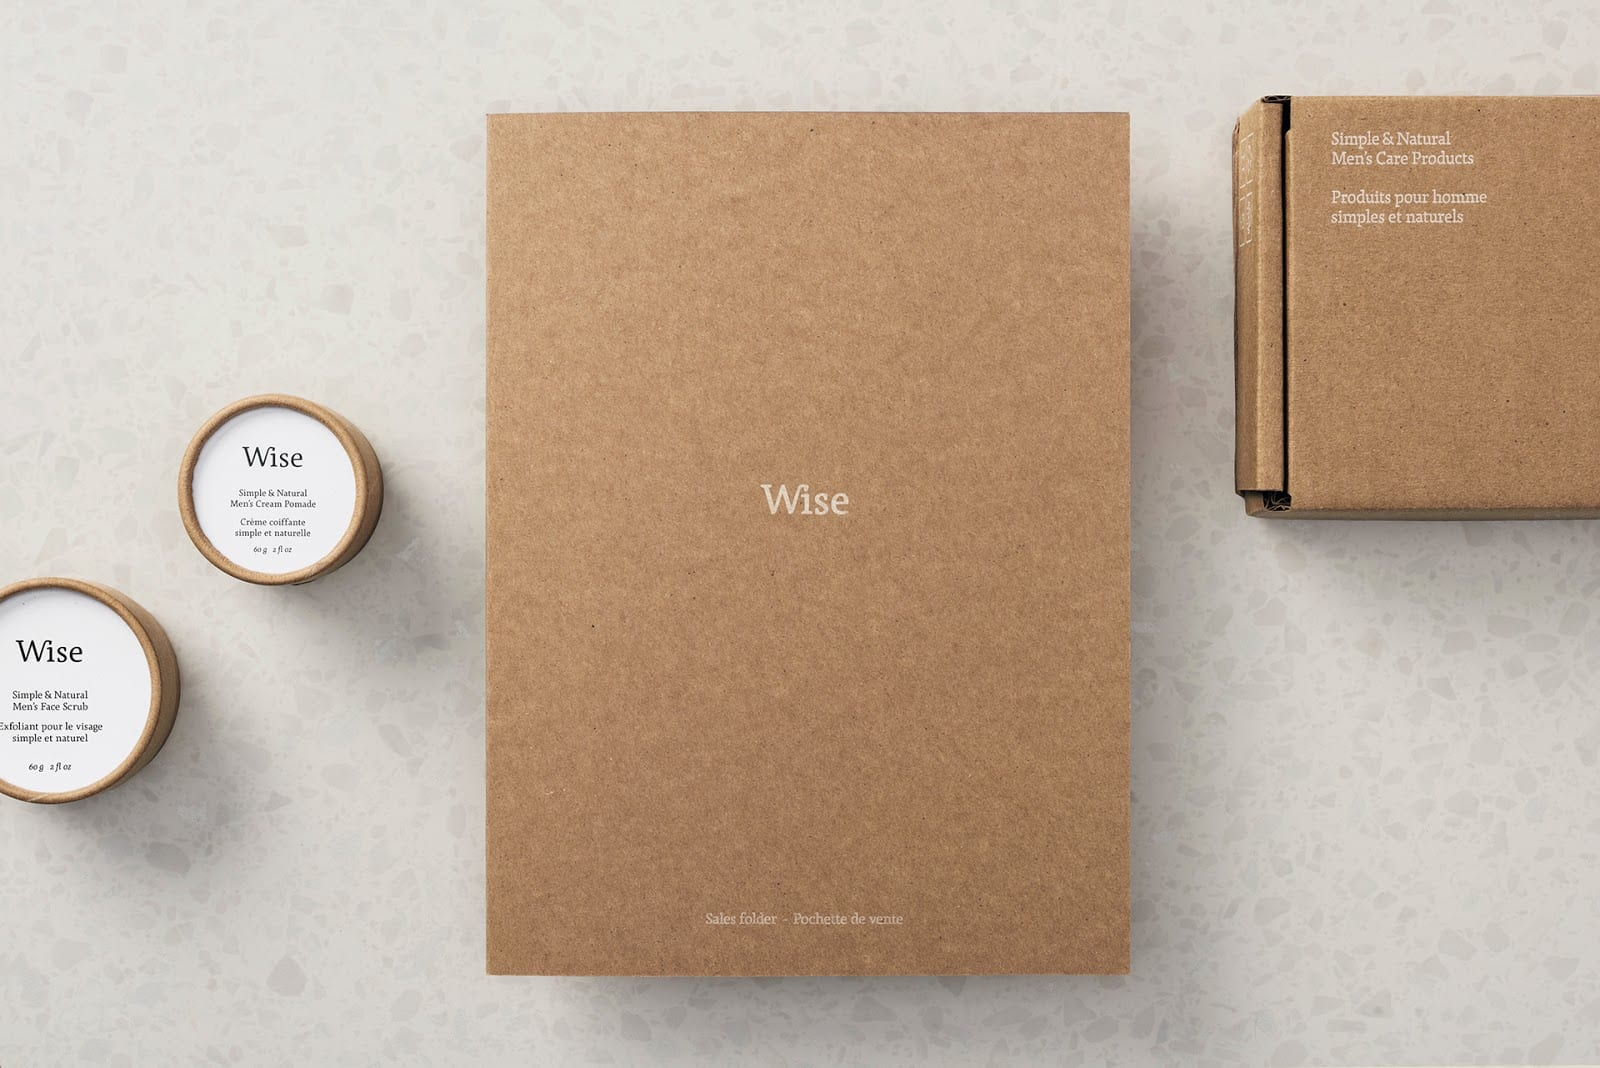 Wise Mens Care Brand Identity and Packaging 010 - Ach, tie obaly – péče Wise Men